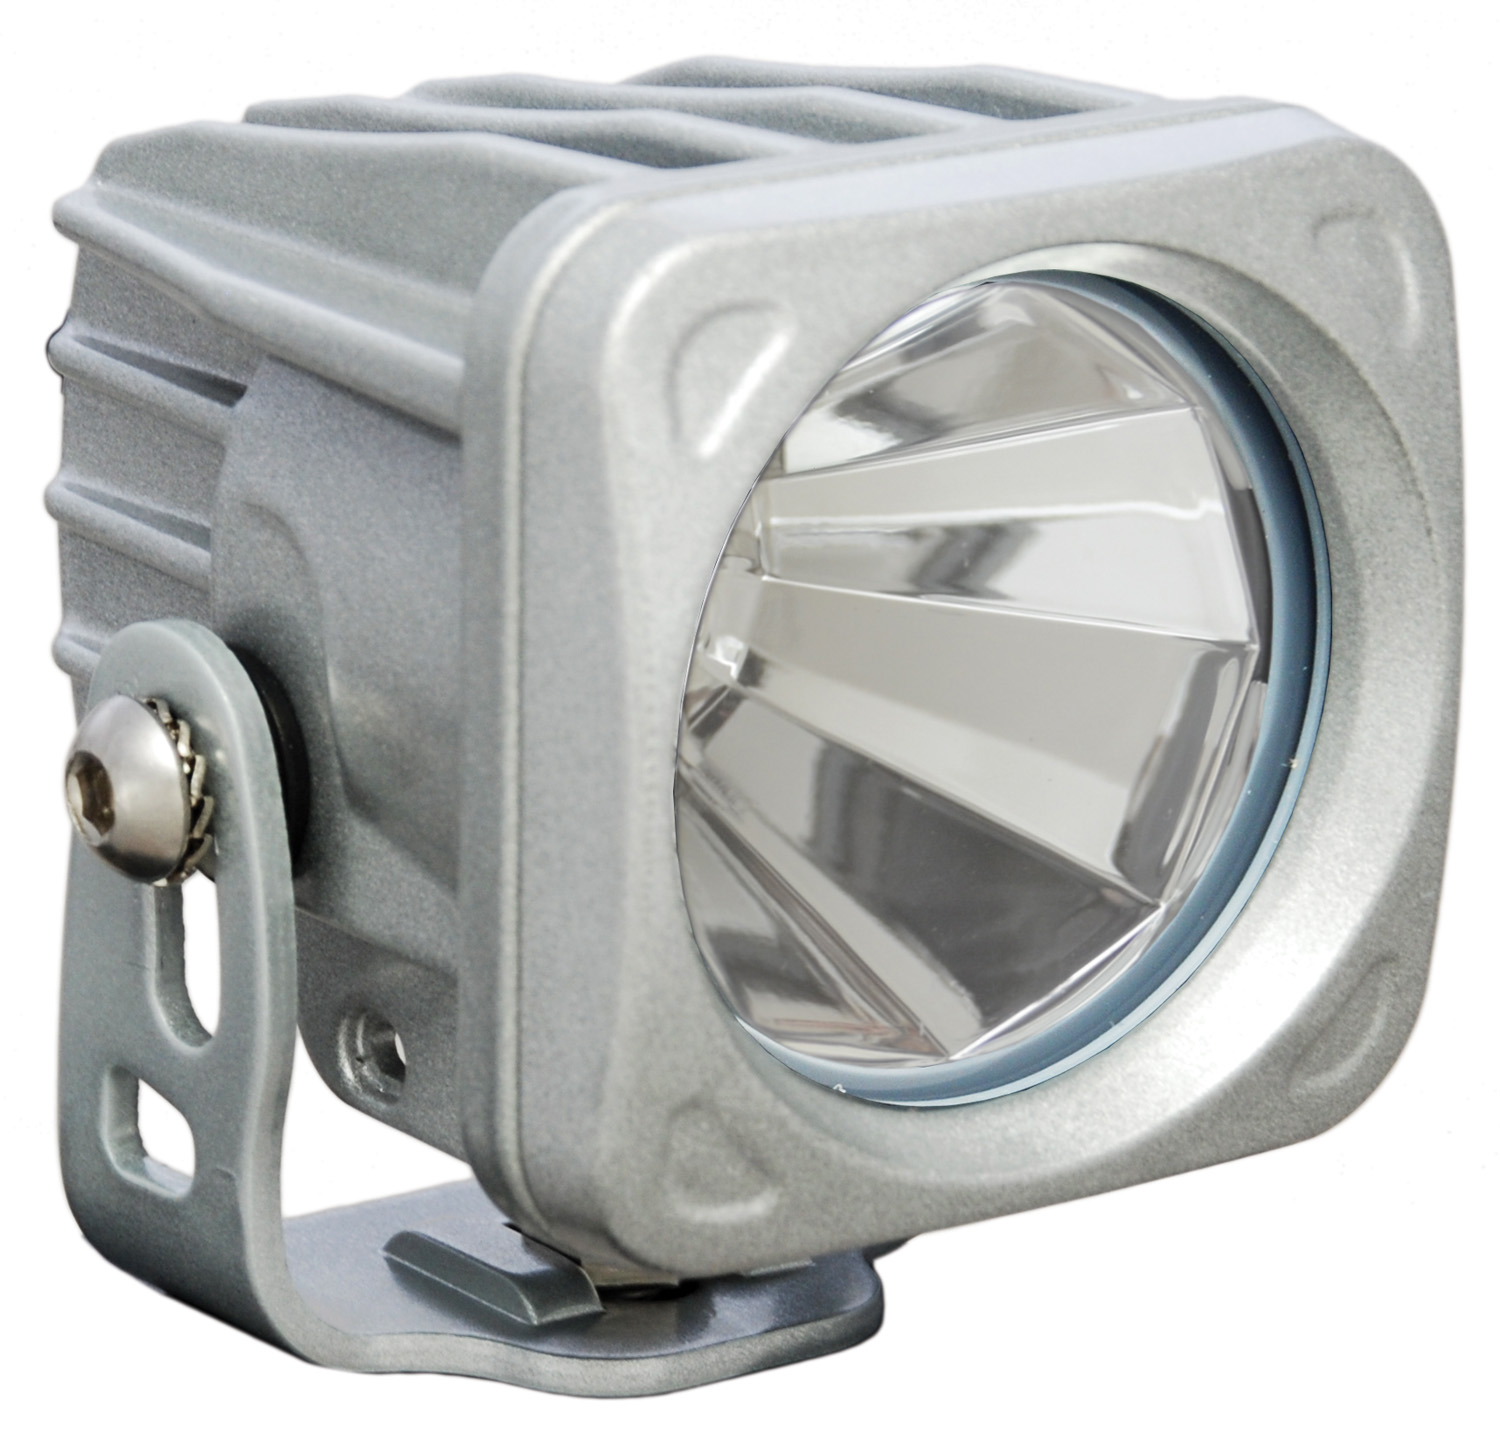 OPTIMUS SQUARE SILVER 1 10W LED 60° FLOOD